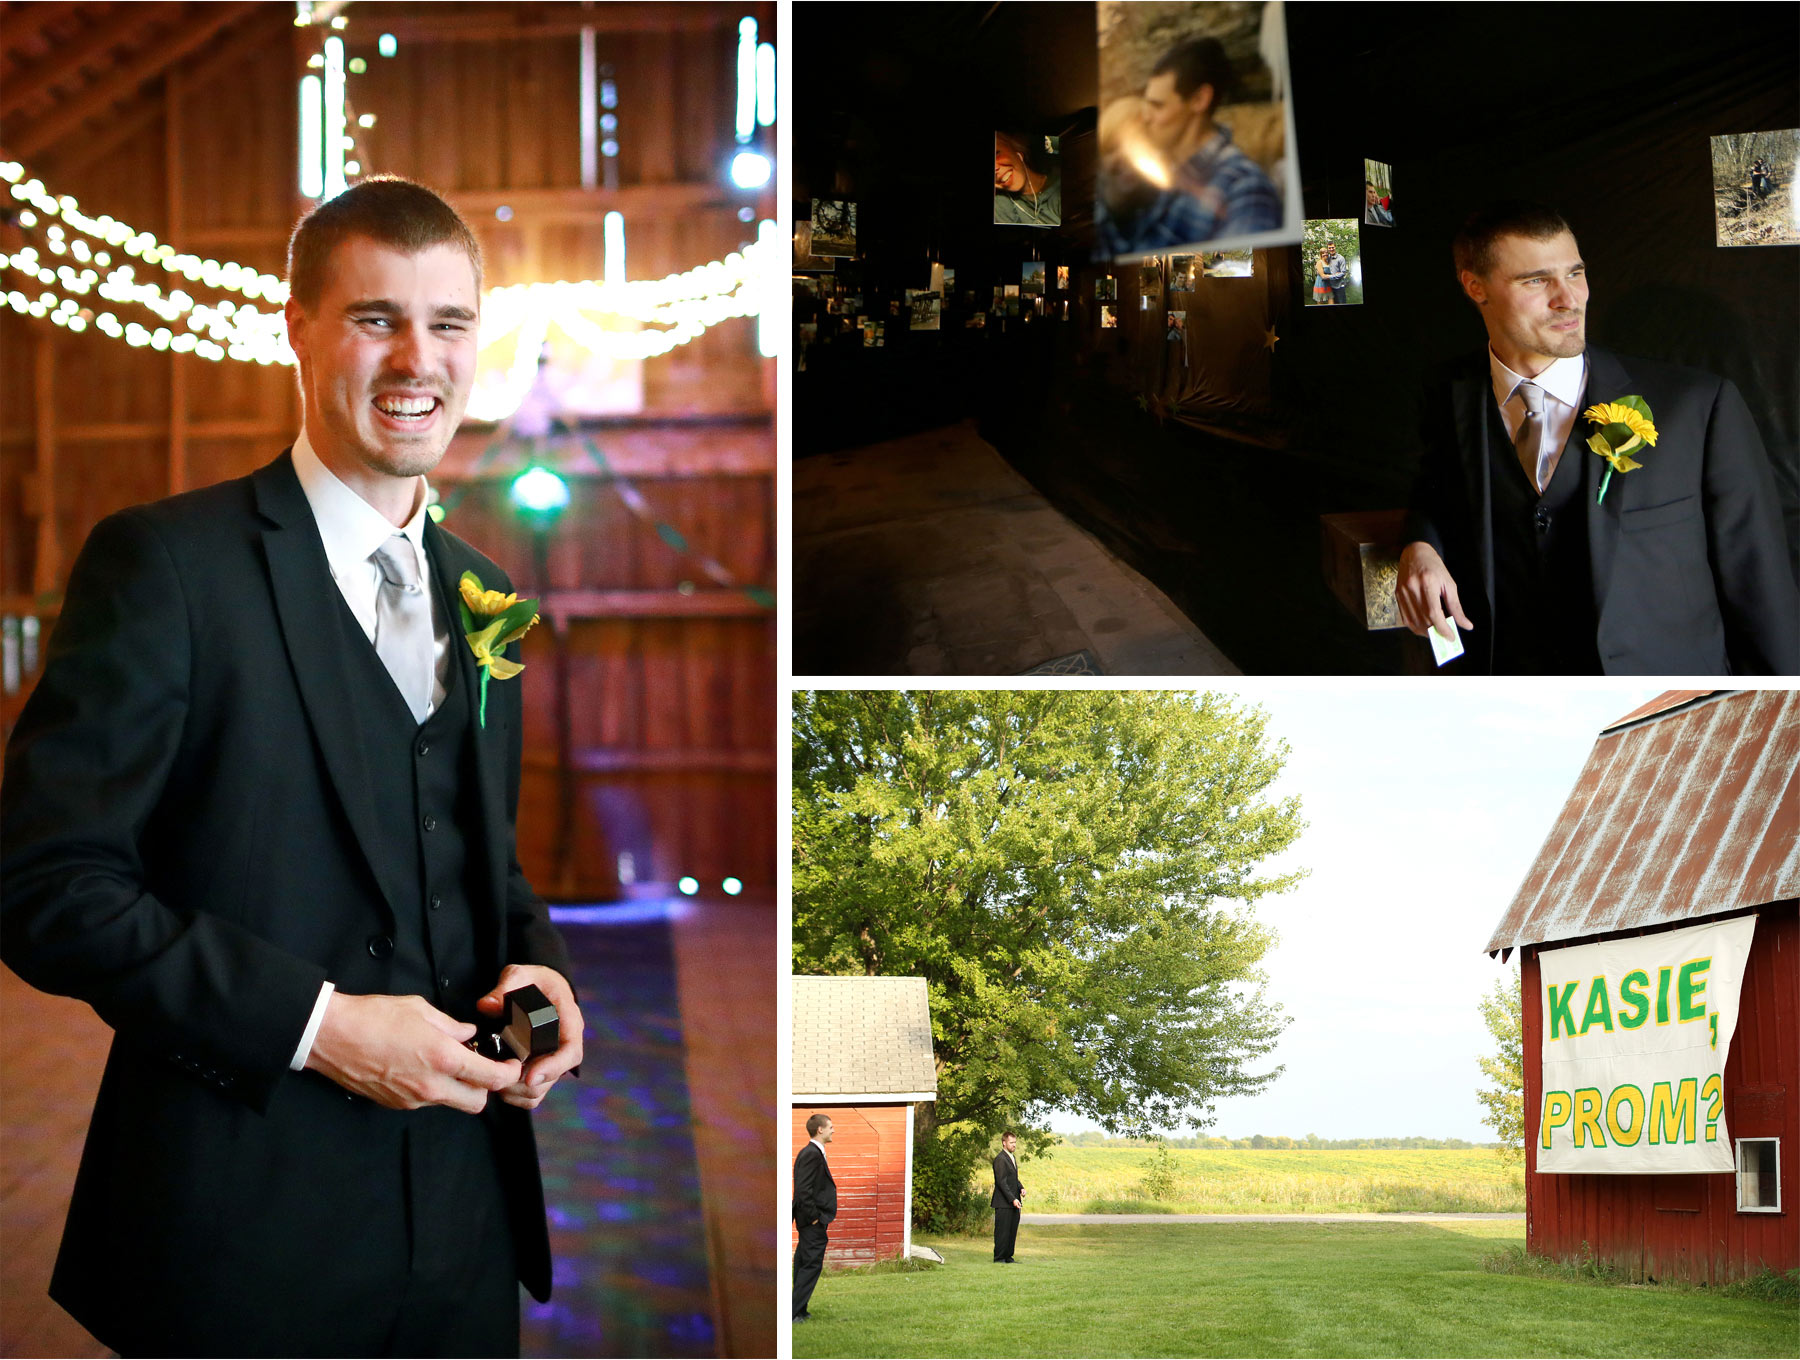 02-Vick-Photography-Proposal-Session-Engagement-Family-Farm-Ring-Barn-Prom-Sign-Kasie-and-Josh.jpg